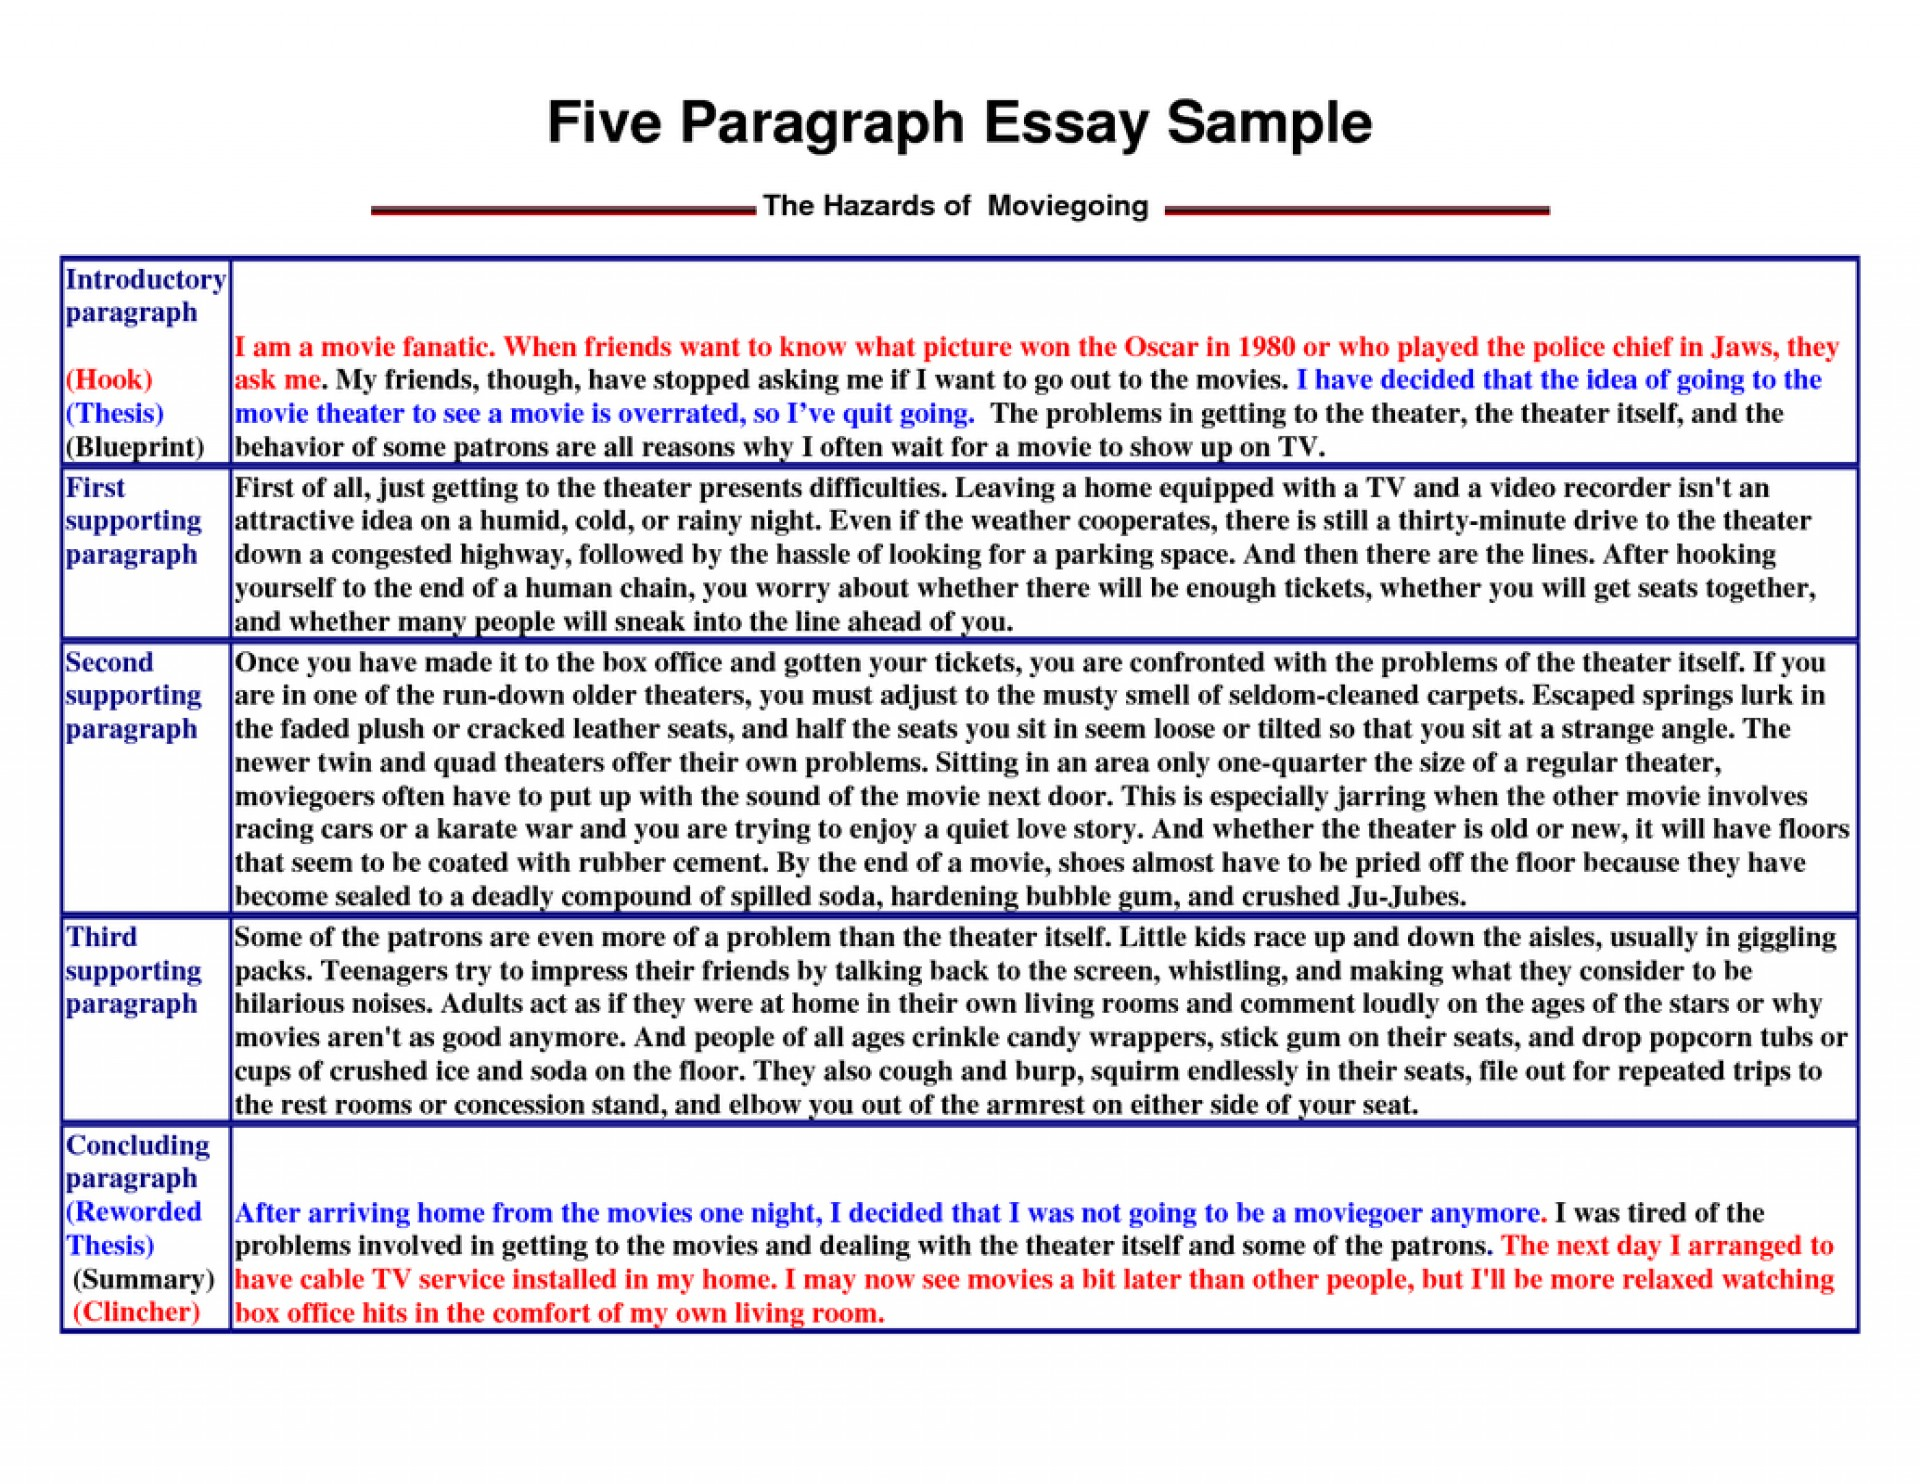 007 Ged Essay Topics Writings For Prompts Stirring 2014 2012 1920